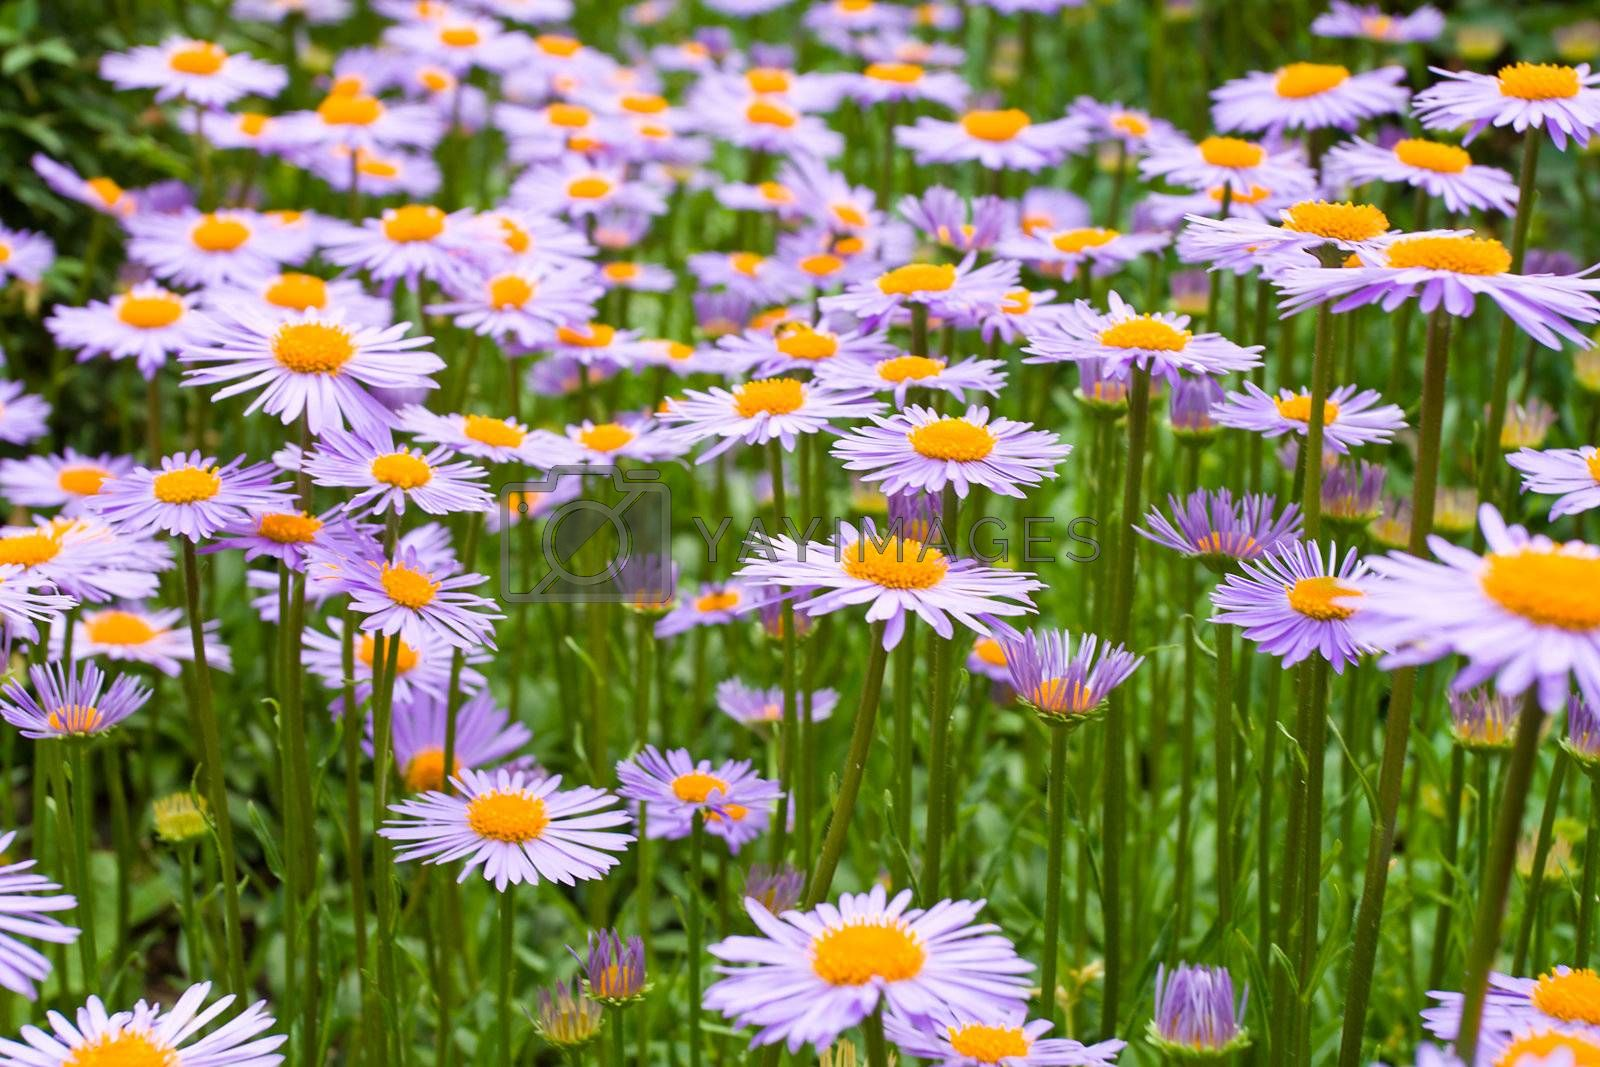 meadow with purple daisies flowers